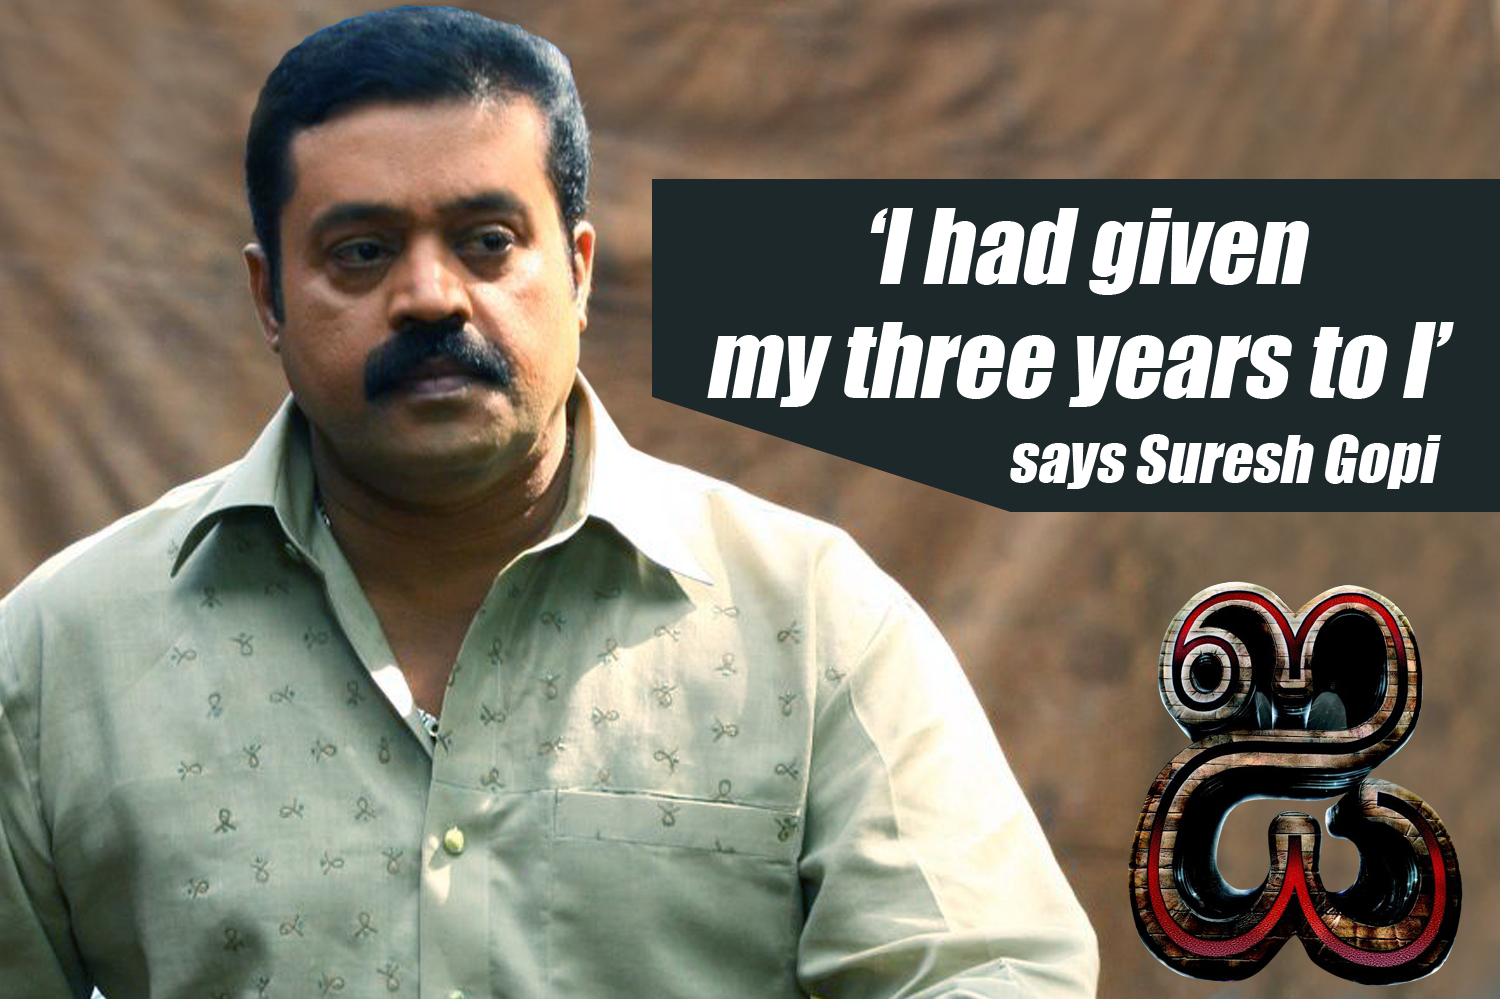 I had given my three years to I movie, says Suresh Gopi-Shankar-Vikram-Onlookers Media